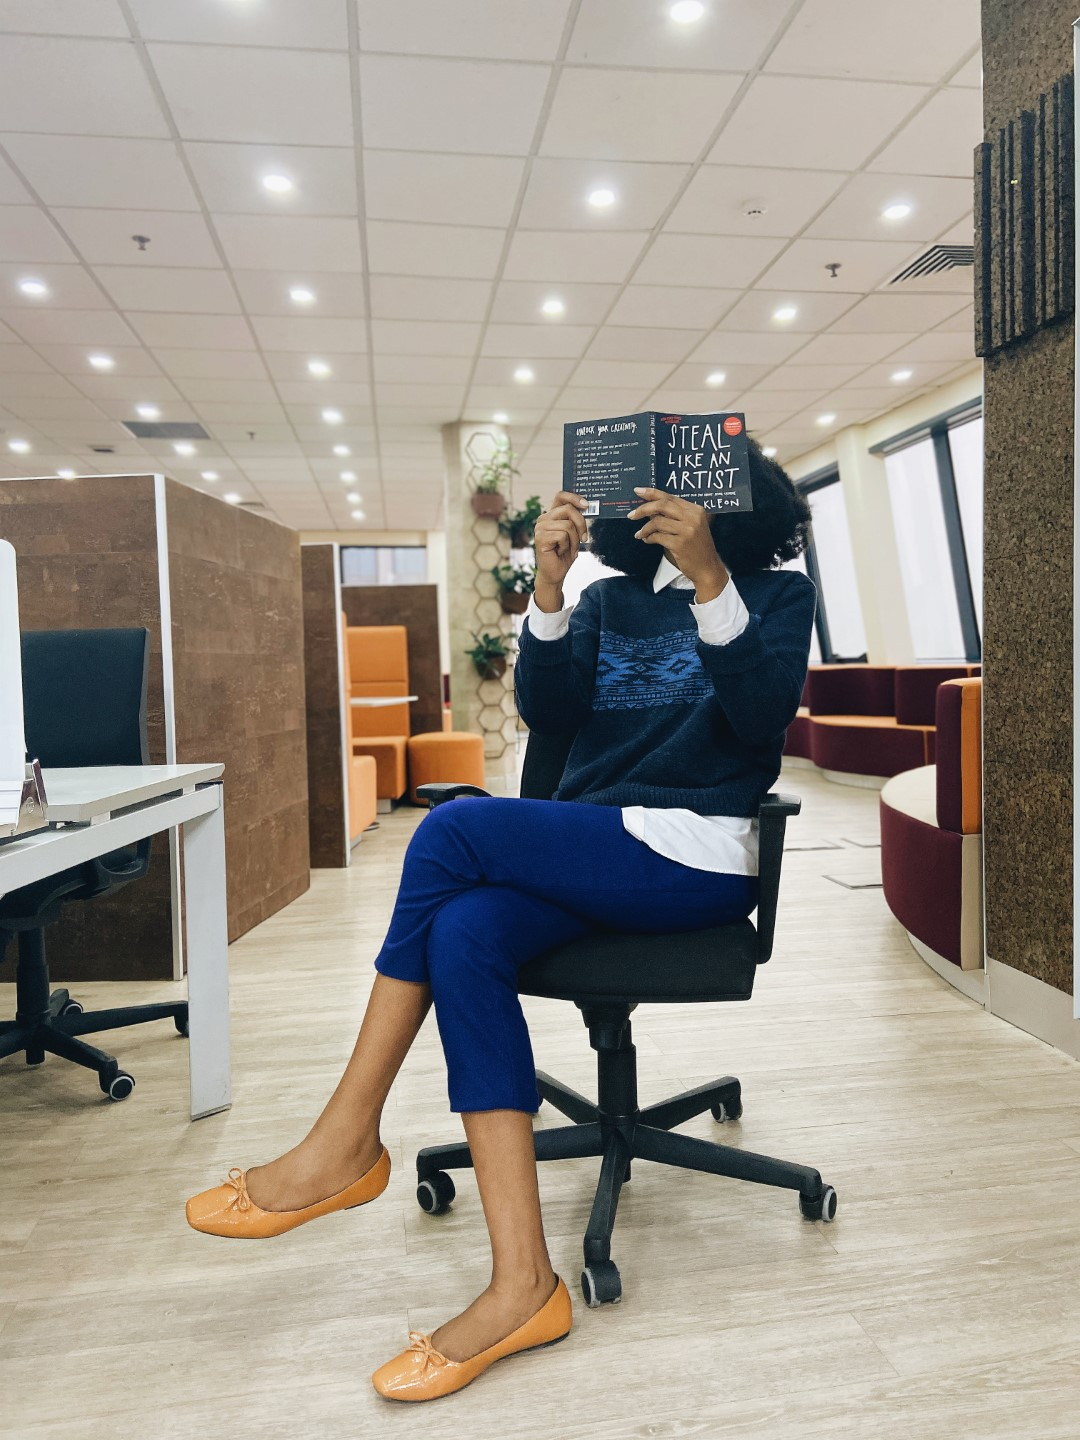 Cassie Daves Nigerian blogger in blue sweater holding the steal like an artist book